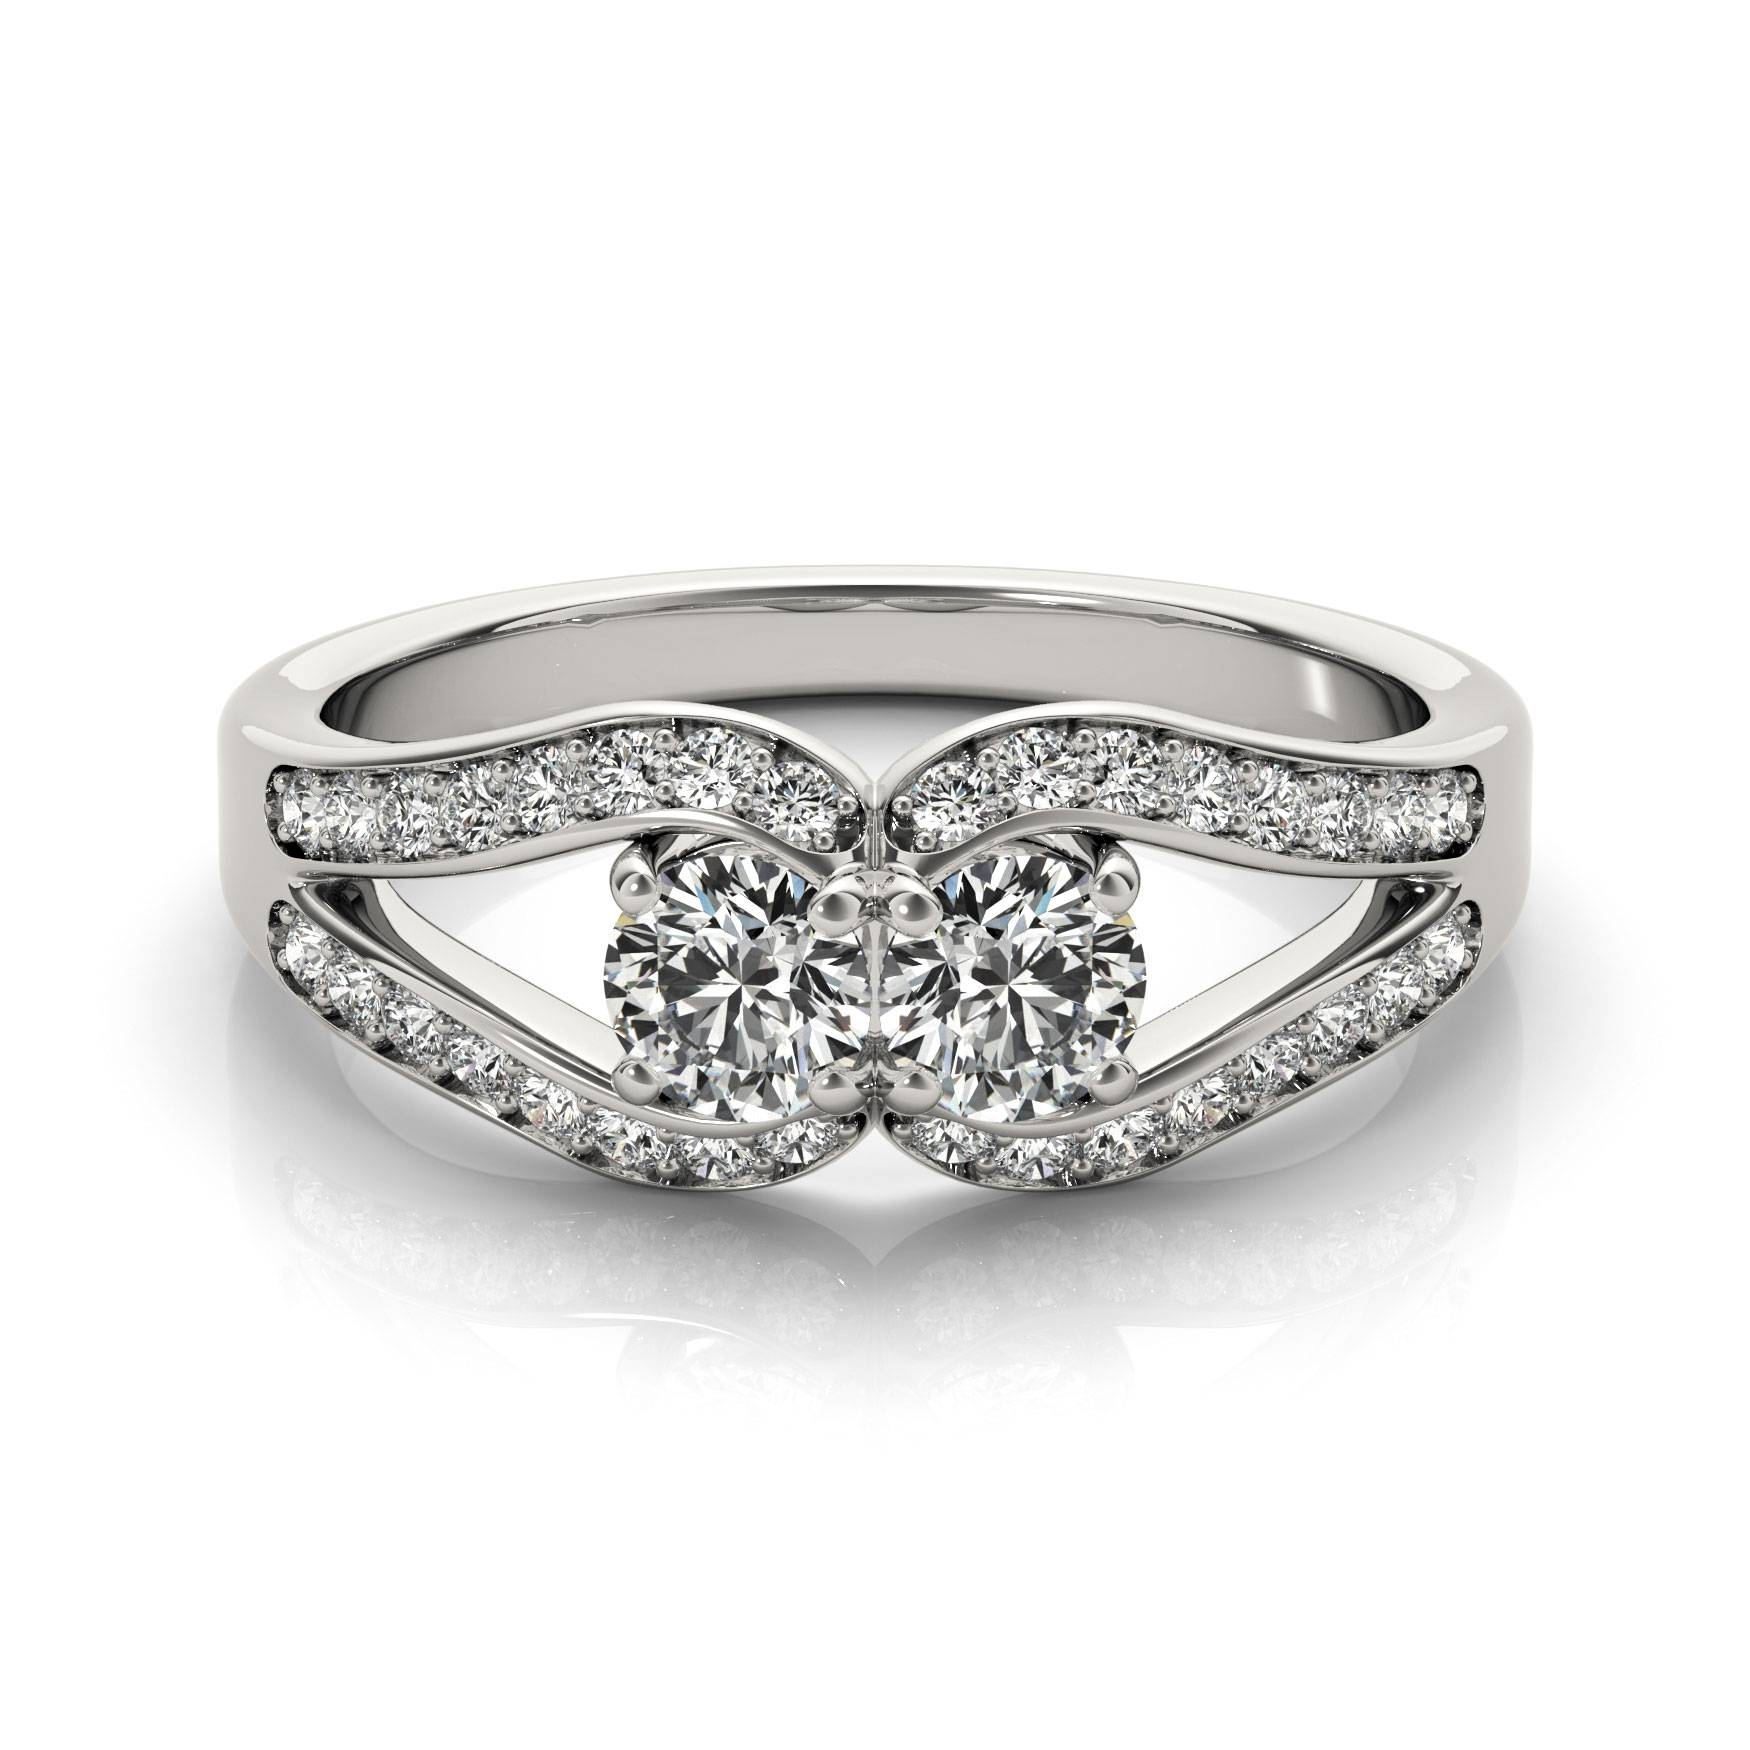 Horseshoe – European Engagement Rings From Mdc Diamonds Nyc For Horseshoe Diamond Engagement Rings (View 3 of 15)